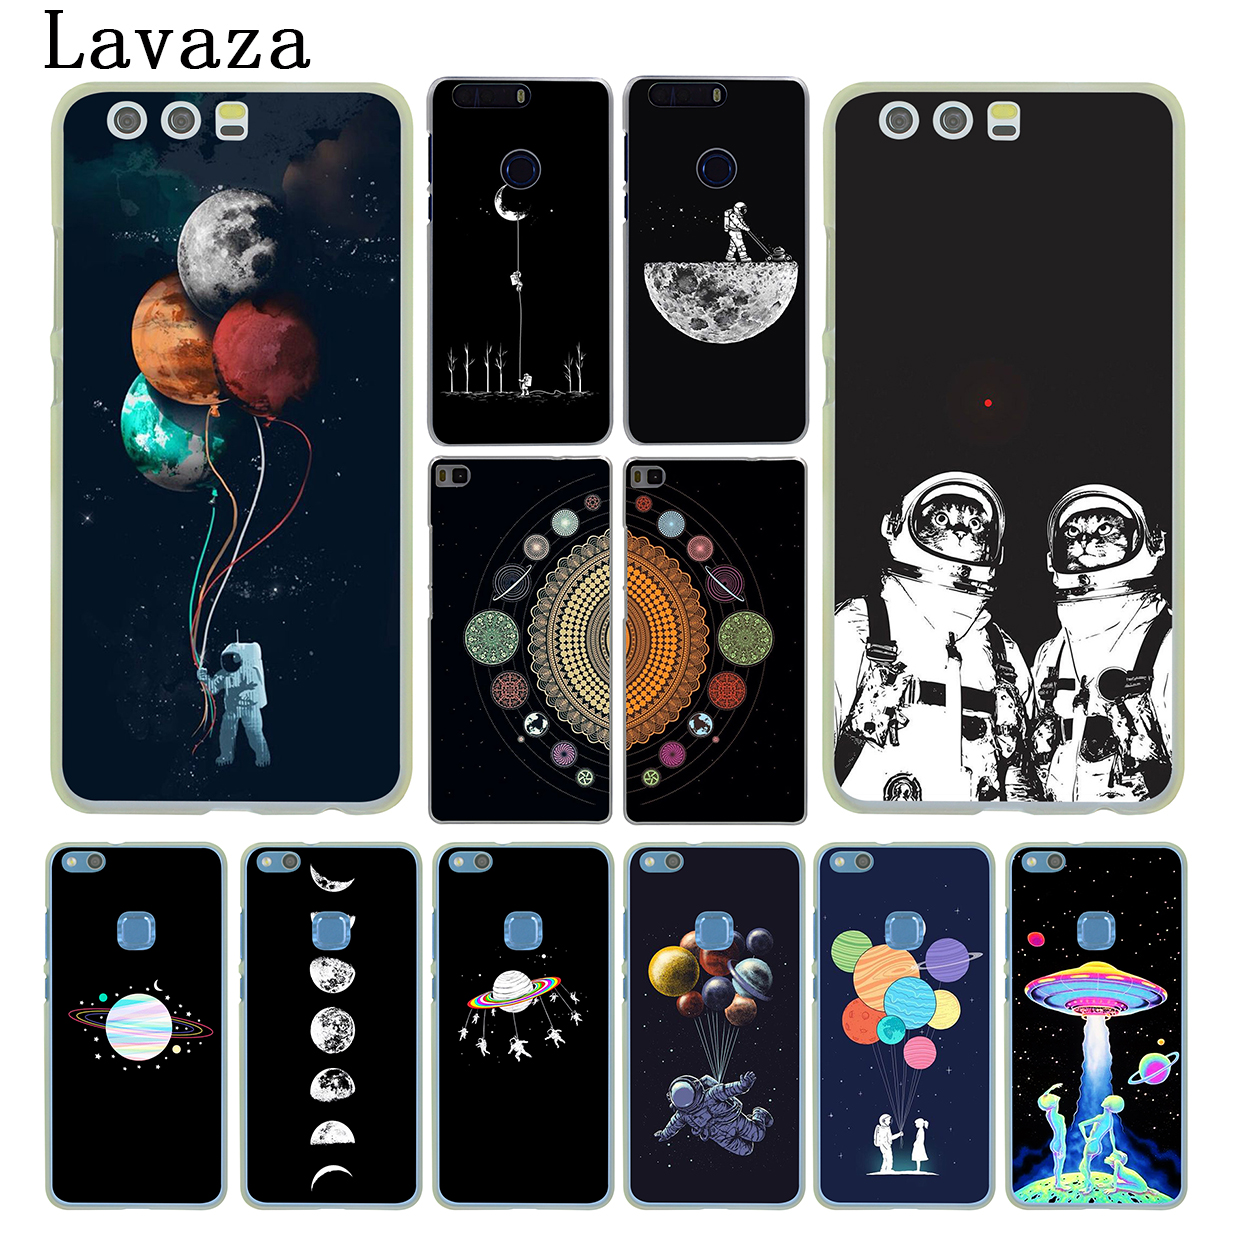 Half-wrapped Case Phone Bags & Cases Useful Space Love Moon Astronaut Smart Mobile Cases For Huawei Mate 7 8 9 10 20 P8 P9 P10 P20 P30 Lite Plus Pro 2017 Pretty And Colorful